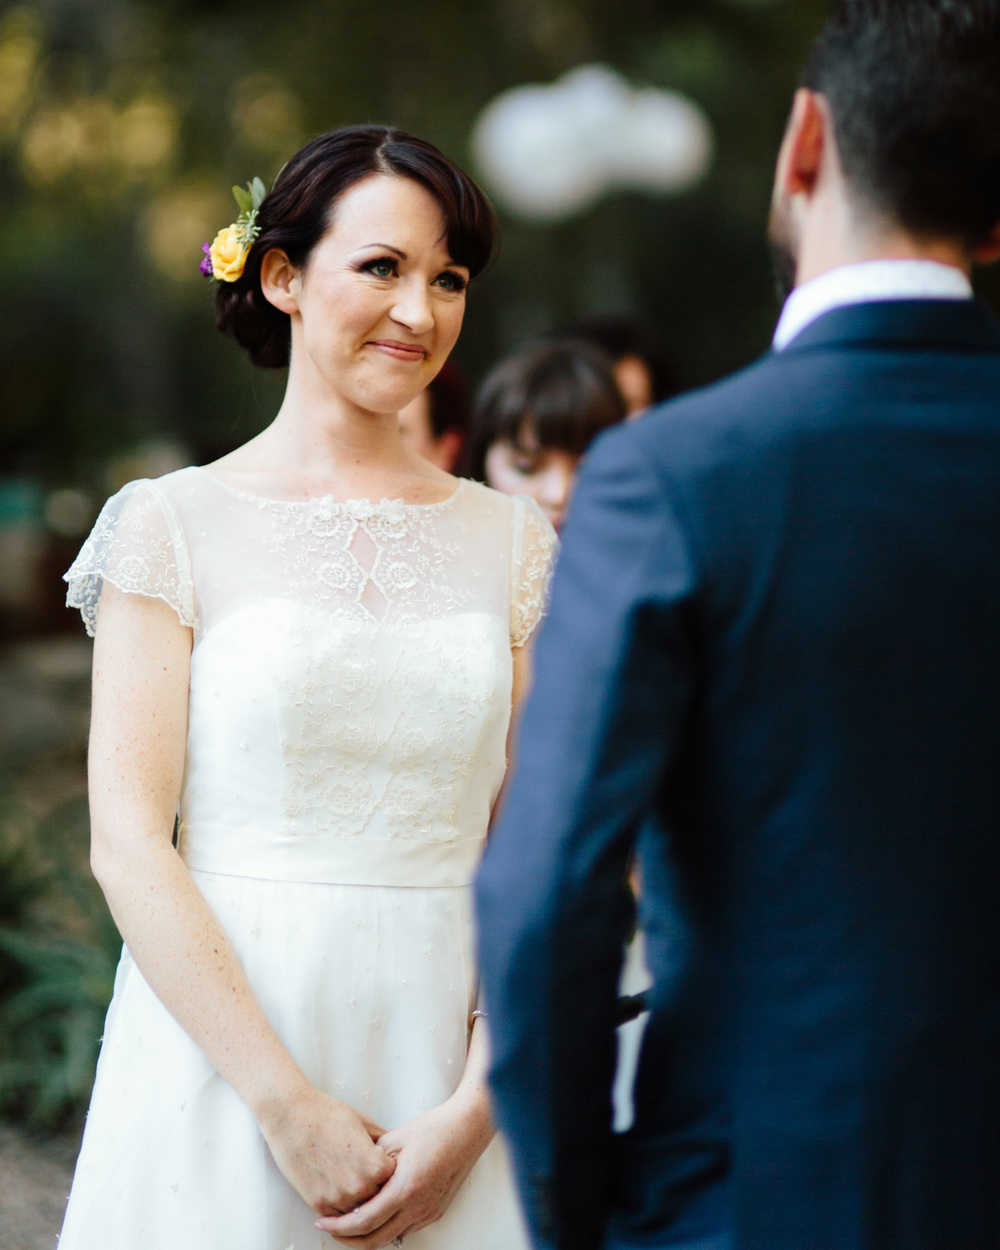 Ojai Wedding Photographer, Calliote Canyon Wedding - The Gathering Season x weareleoandkat 035.JPG